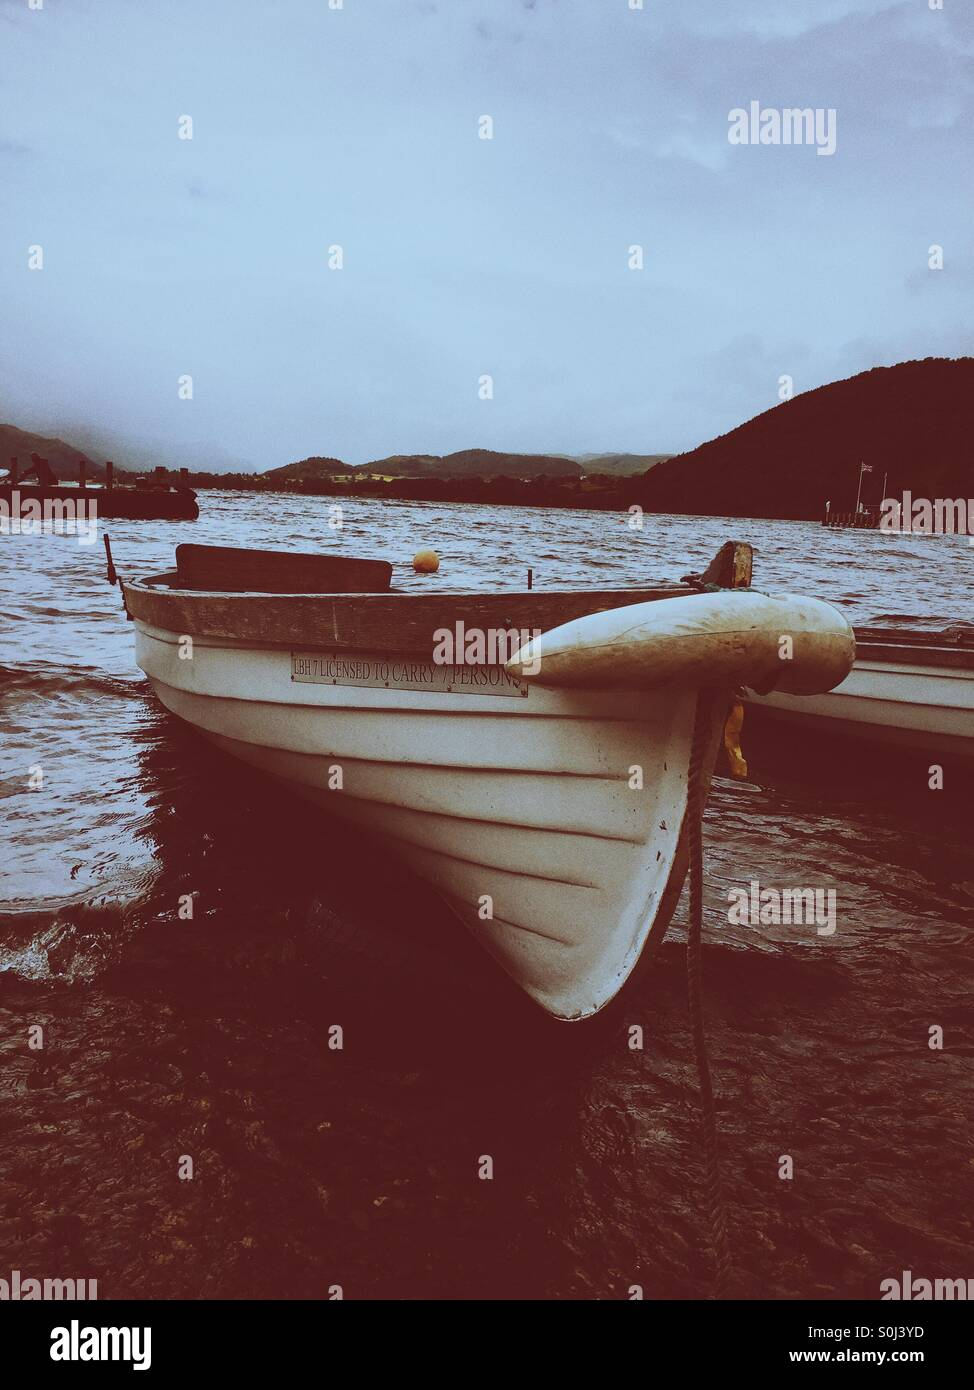 Ullswater lake rowing boat - Stock Image